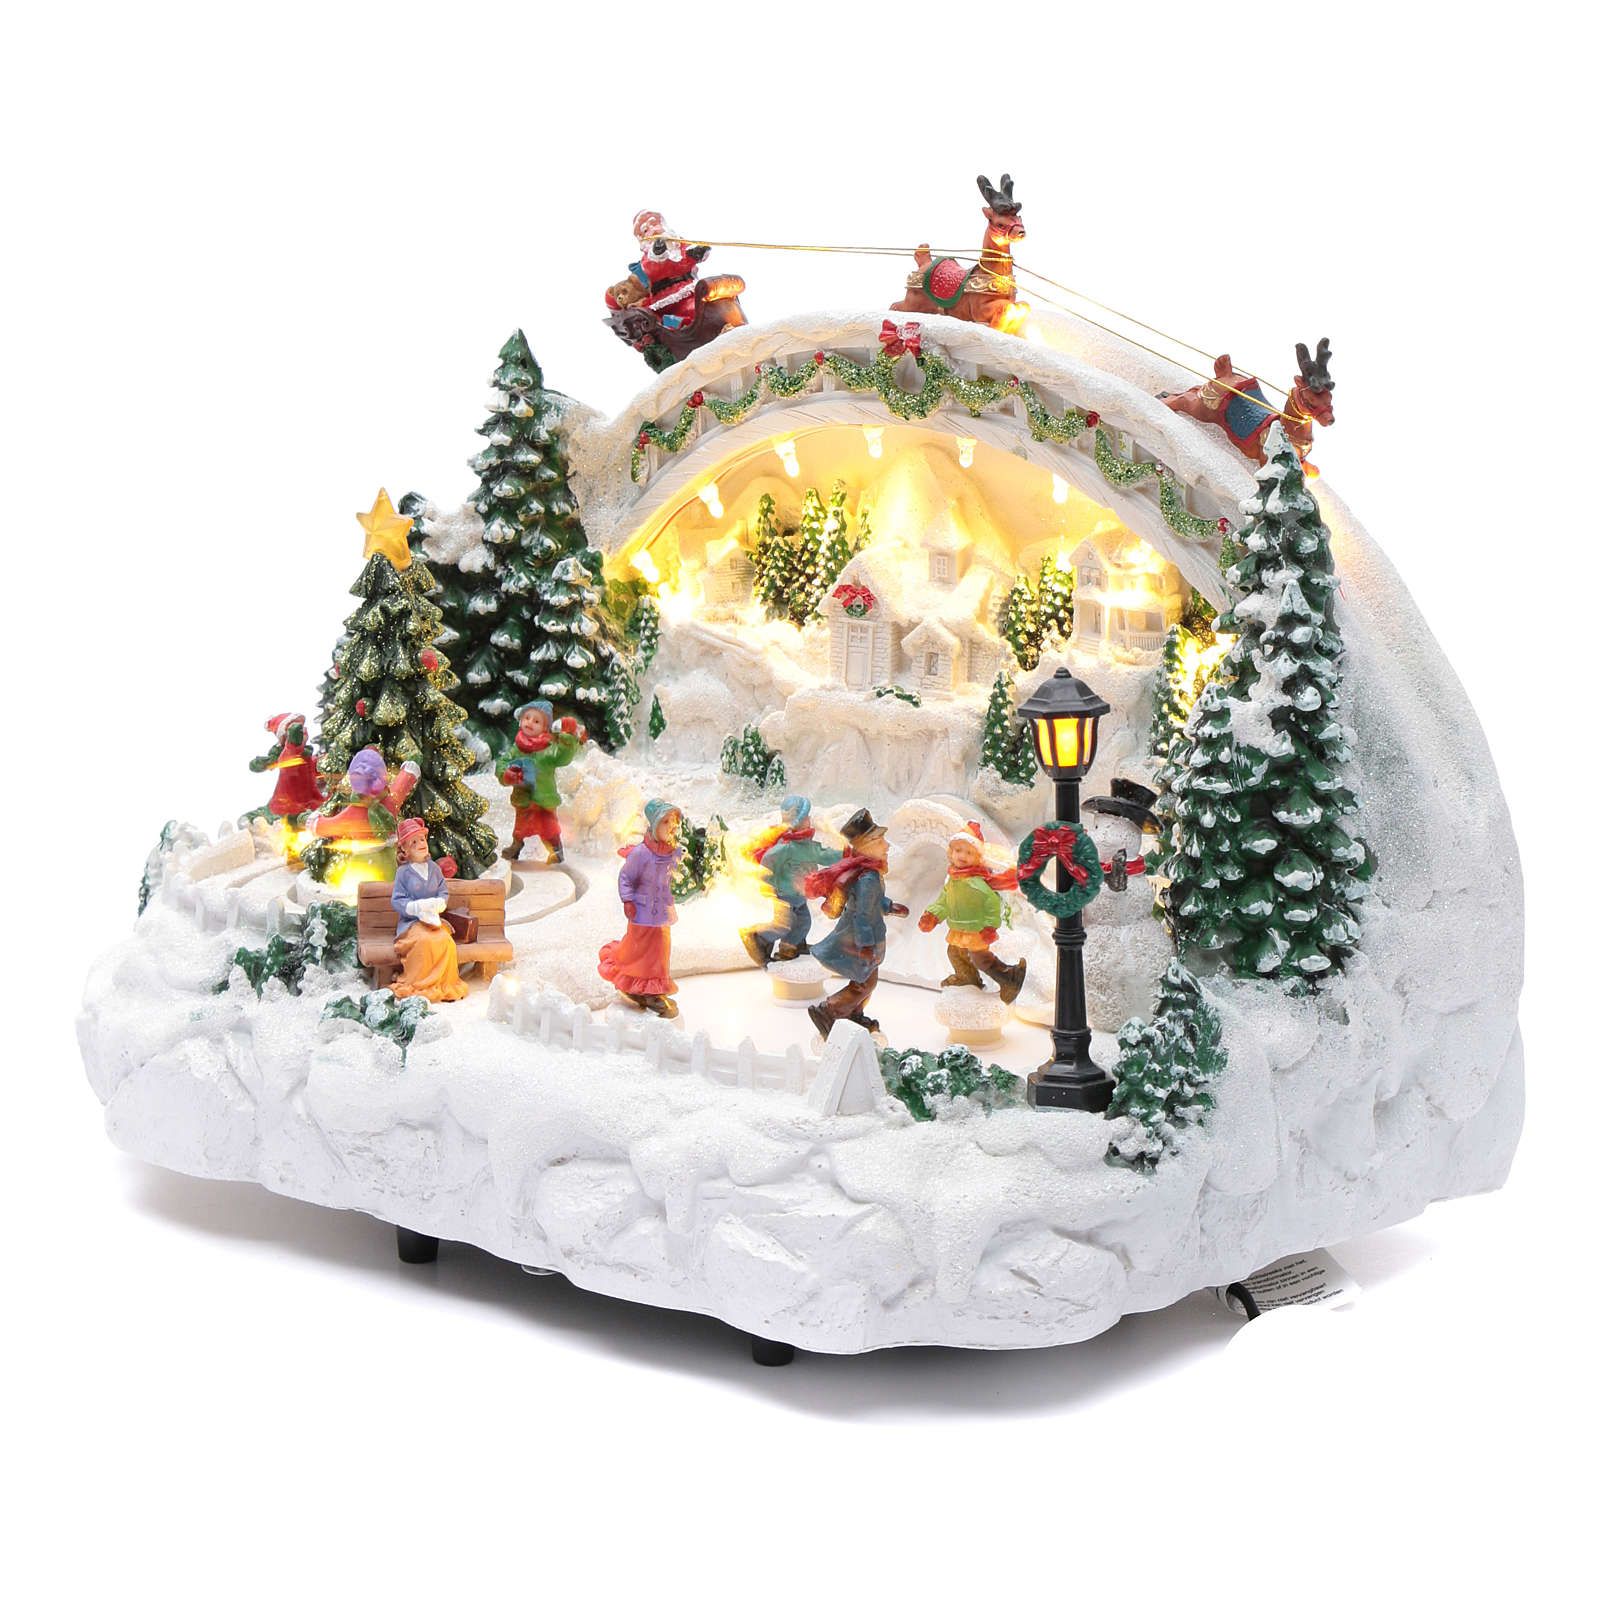 Christmas village with music, lighting, moving ice skaters and Christmas tree 24X33X21 cm 3